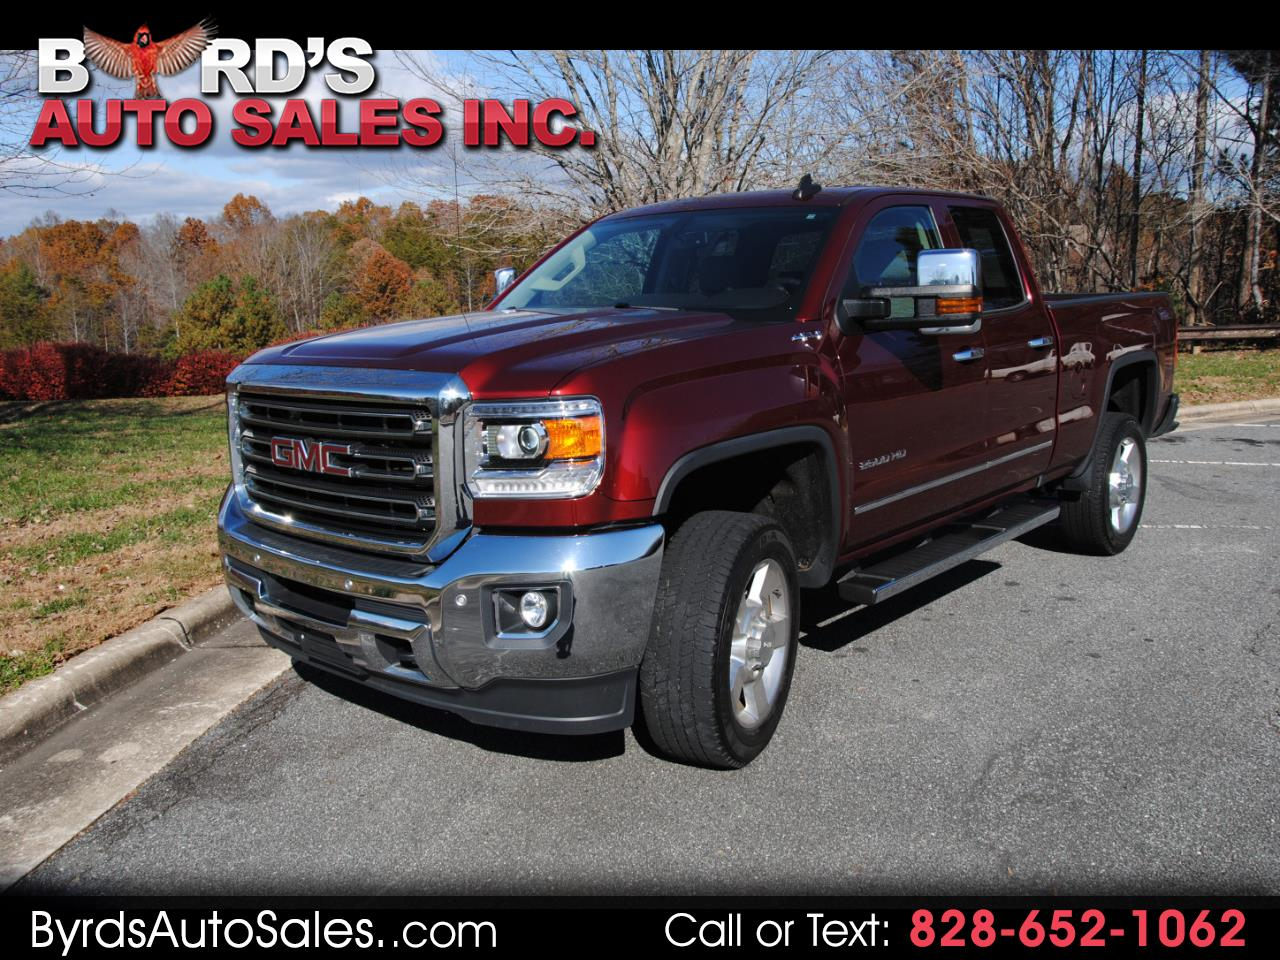 2016 GMC Sierra 2500HD 4WD Double Cab 144.2